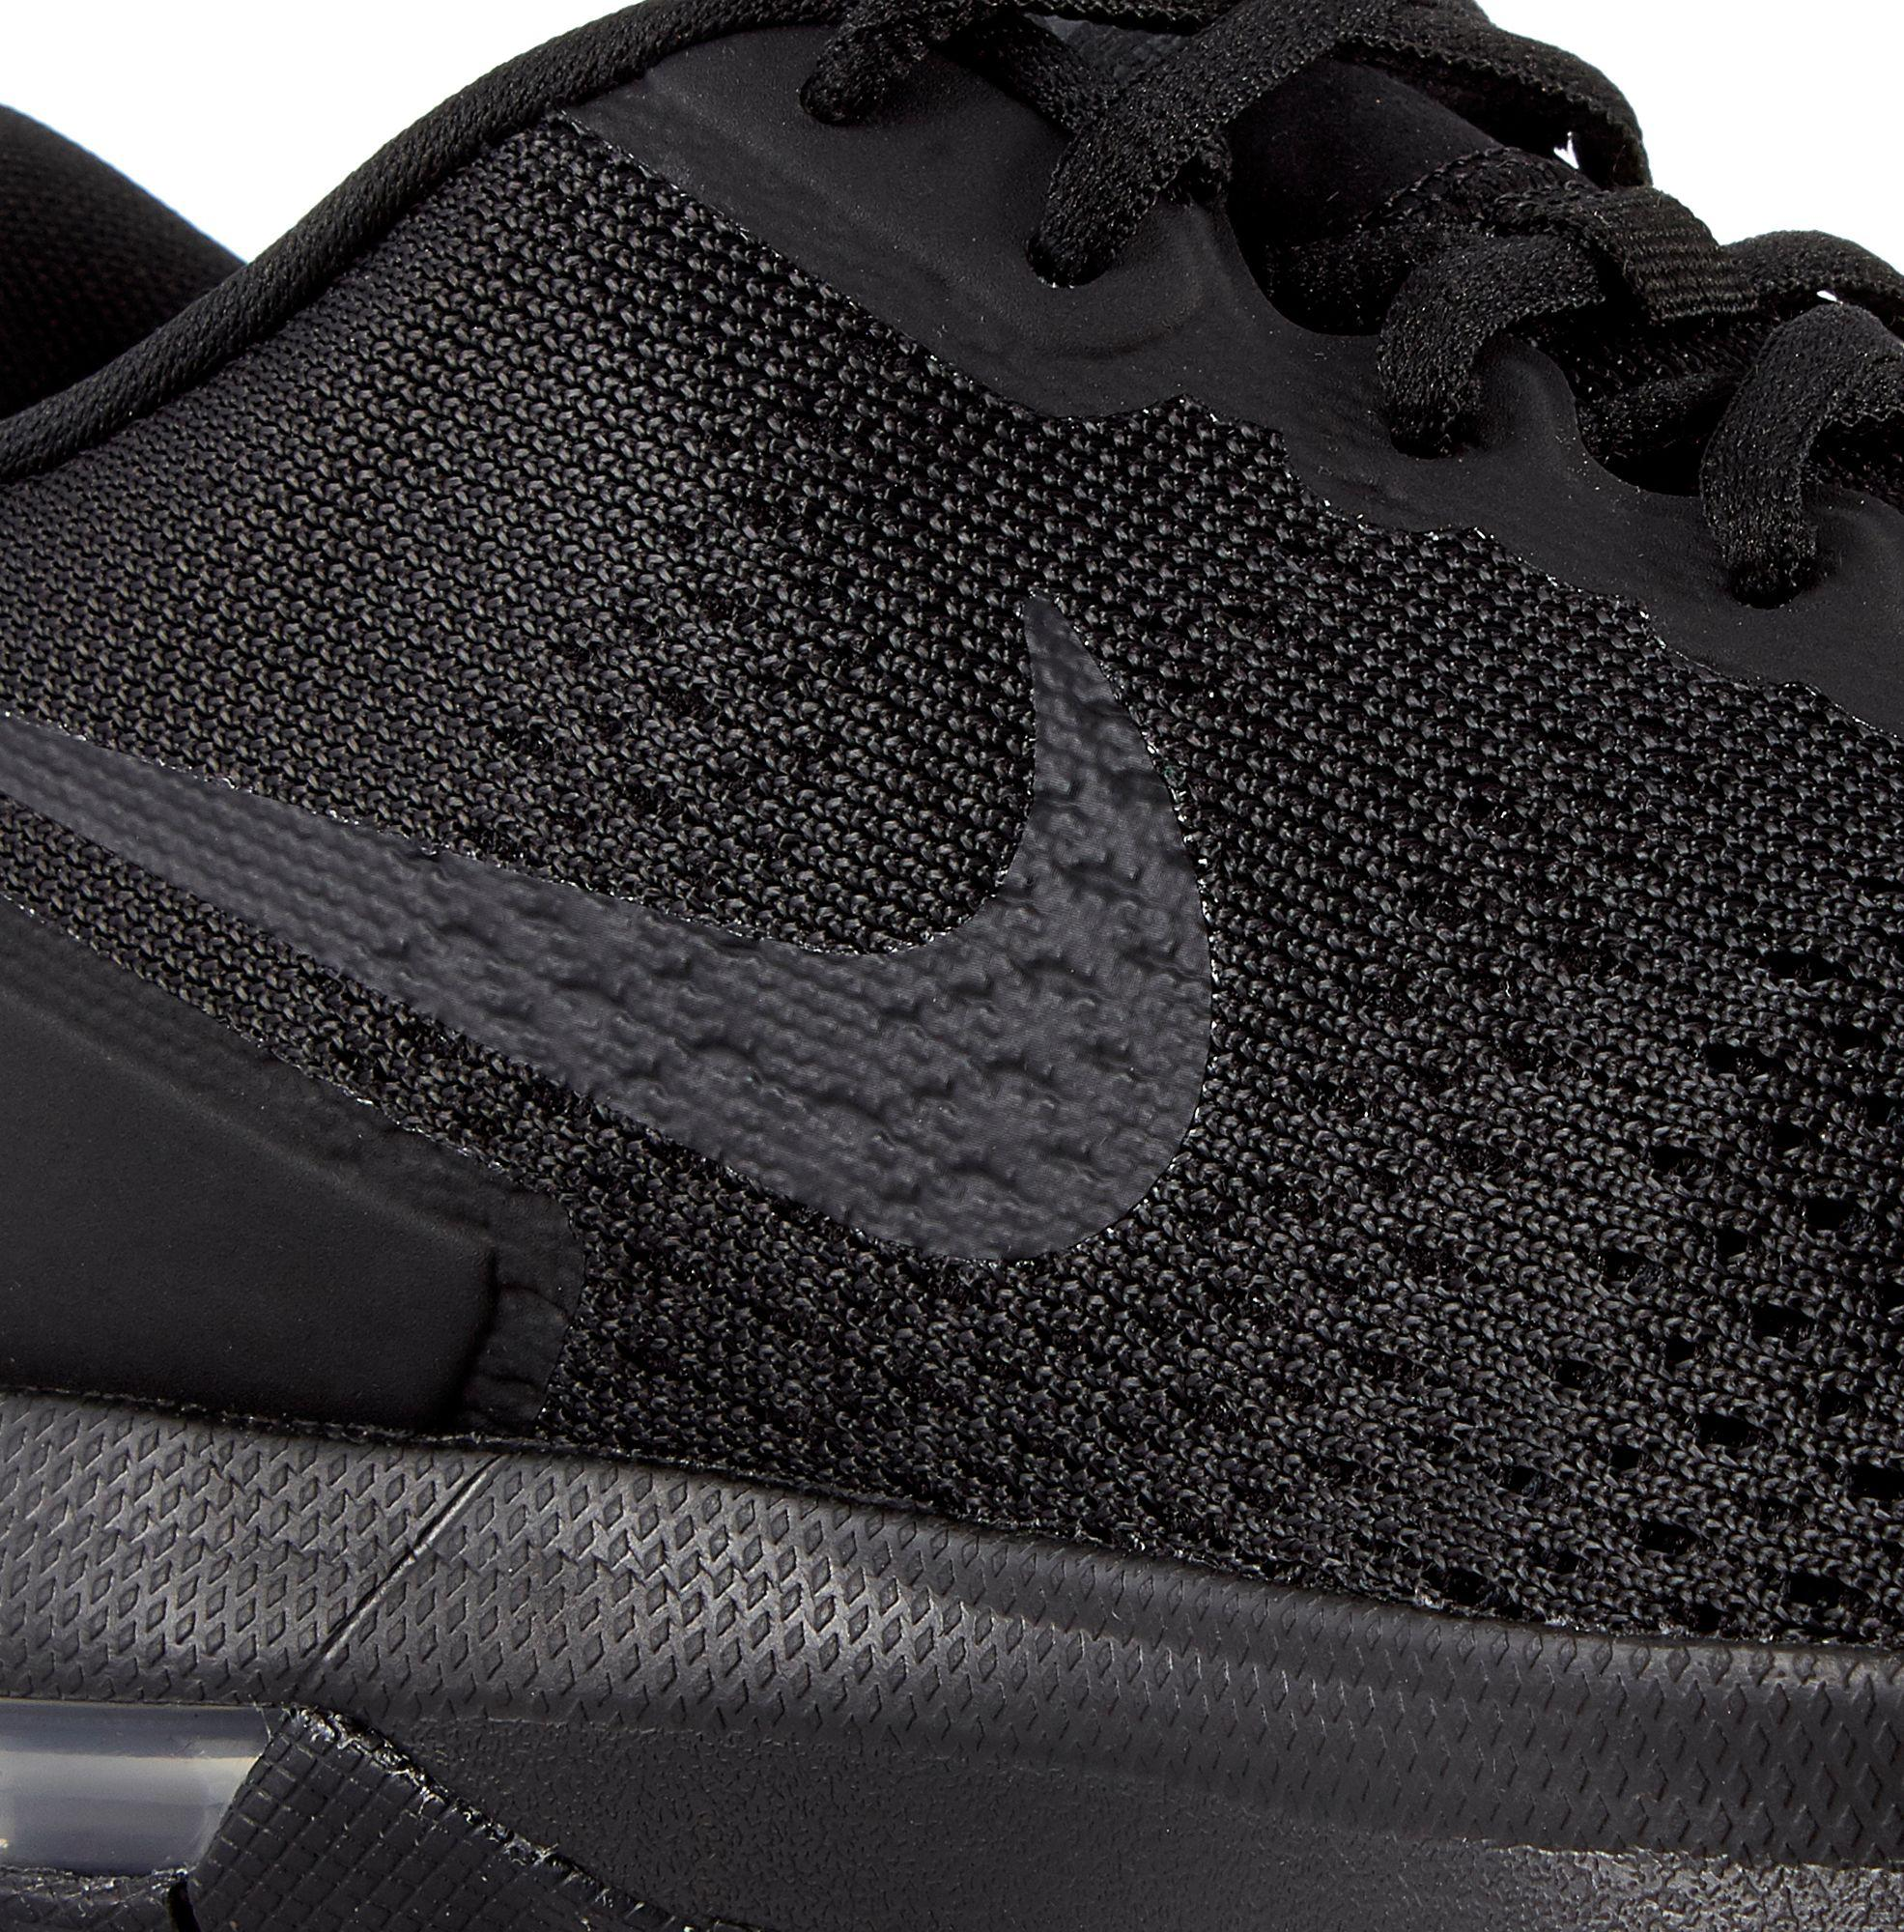 huge discount d2806 1c84e Nike - Black Air Max Typha Training Shoes for Men - Lyst